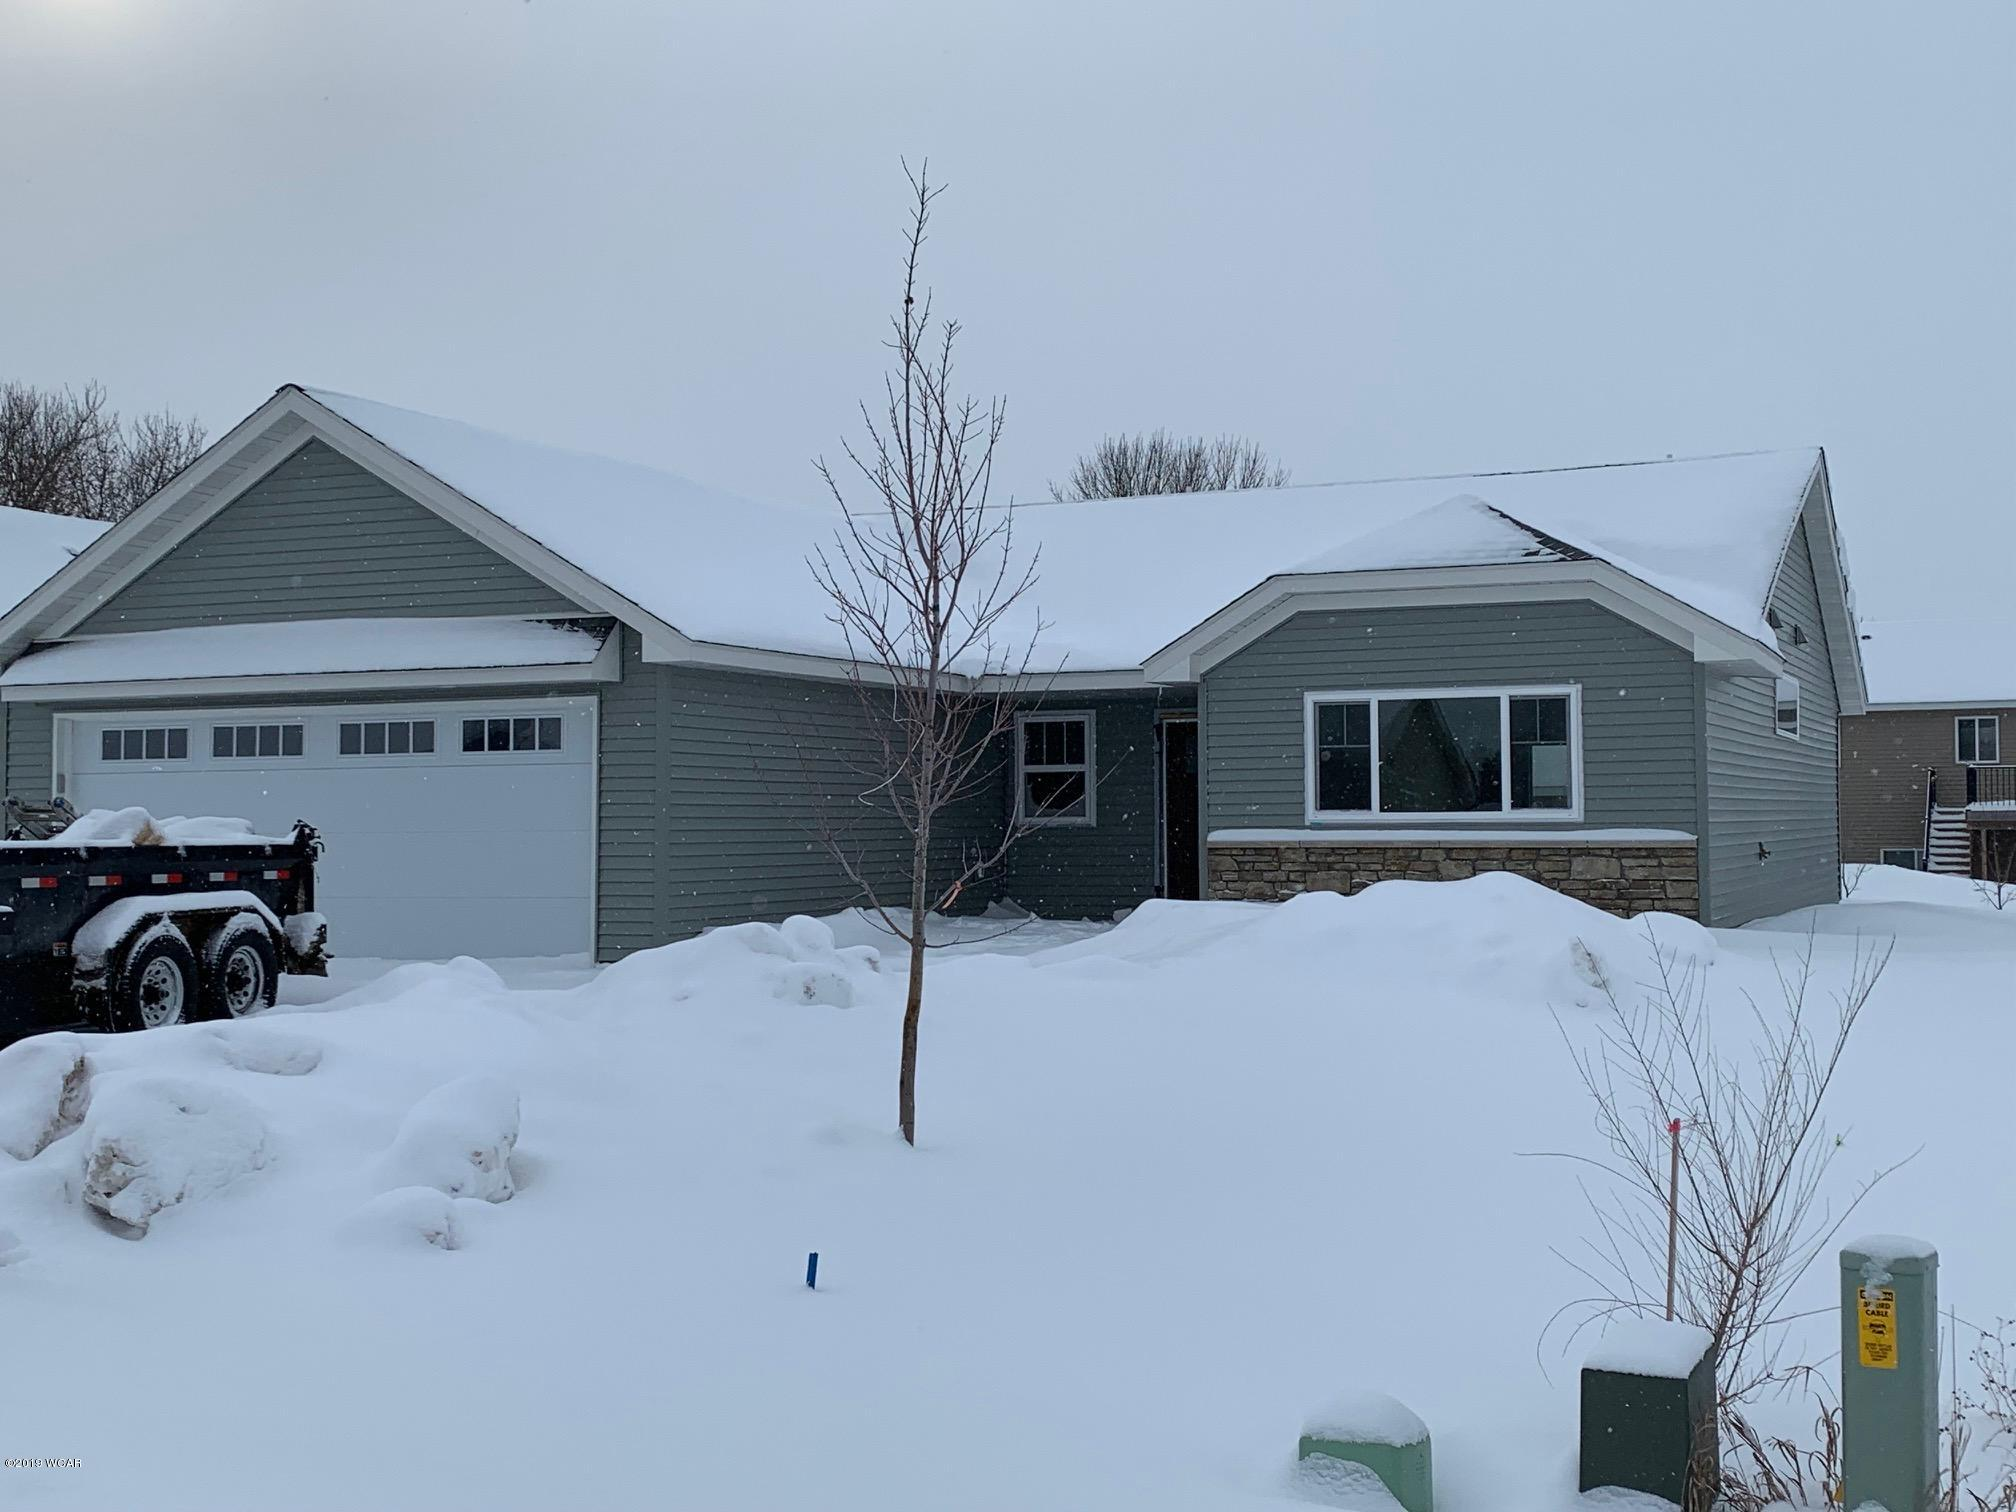 1637 18th Avenue,Willmar,3 Bedrooms Bedrooms,2 BathroomsBathrooms,Single Family,18th Avenue,6033495